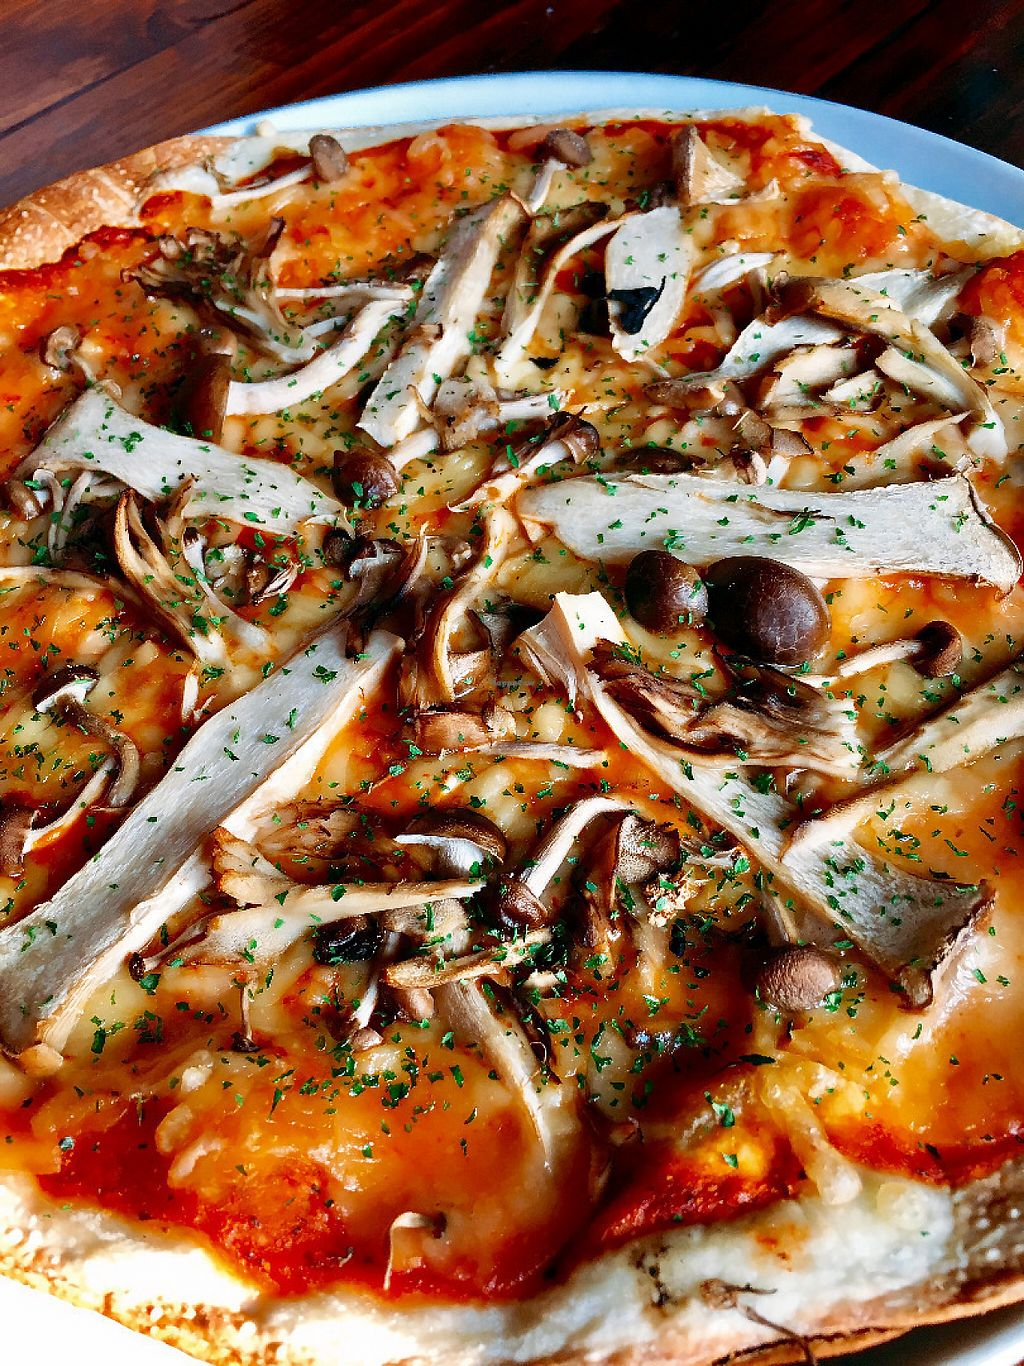 """Photo of Hobgoblin - Shibuya  by <a href=""""/members/profile/Injapan"""">Injapan</a> <br/>Mixed Mushroom Pizza <br/> May 7, 2017  - <a href='/contact/abuse/image/91644/257005'>Report</a>"""